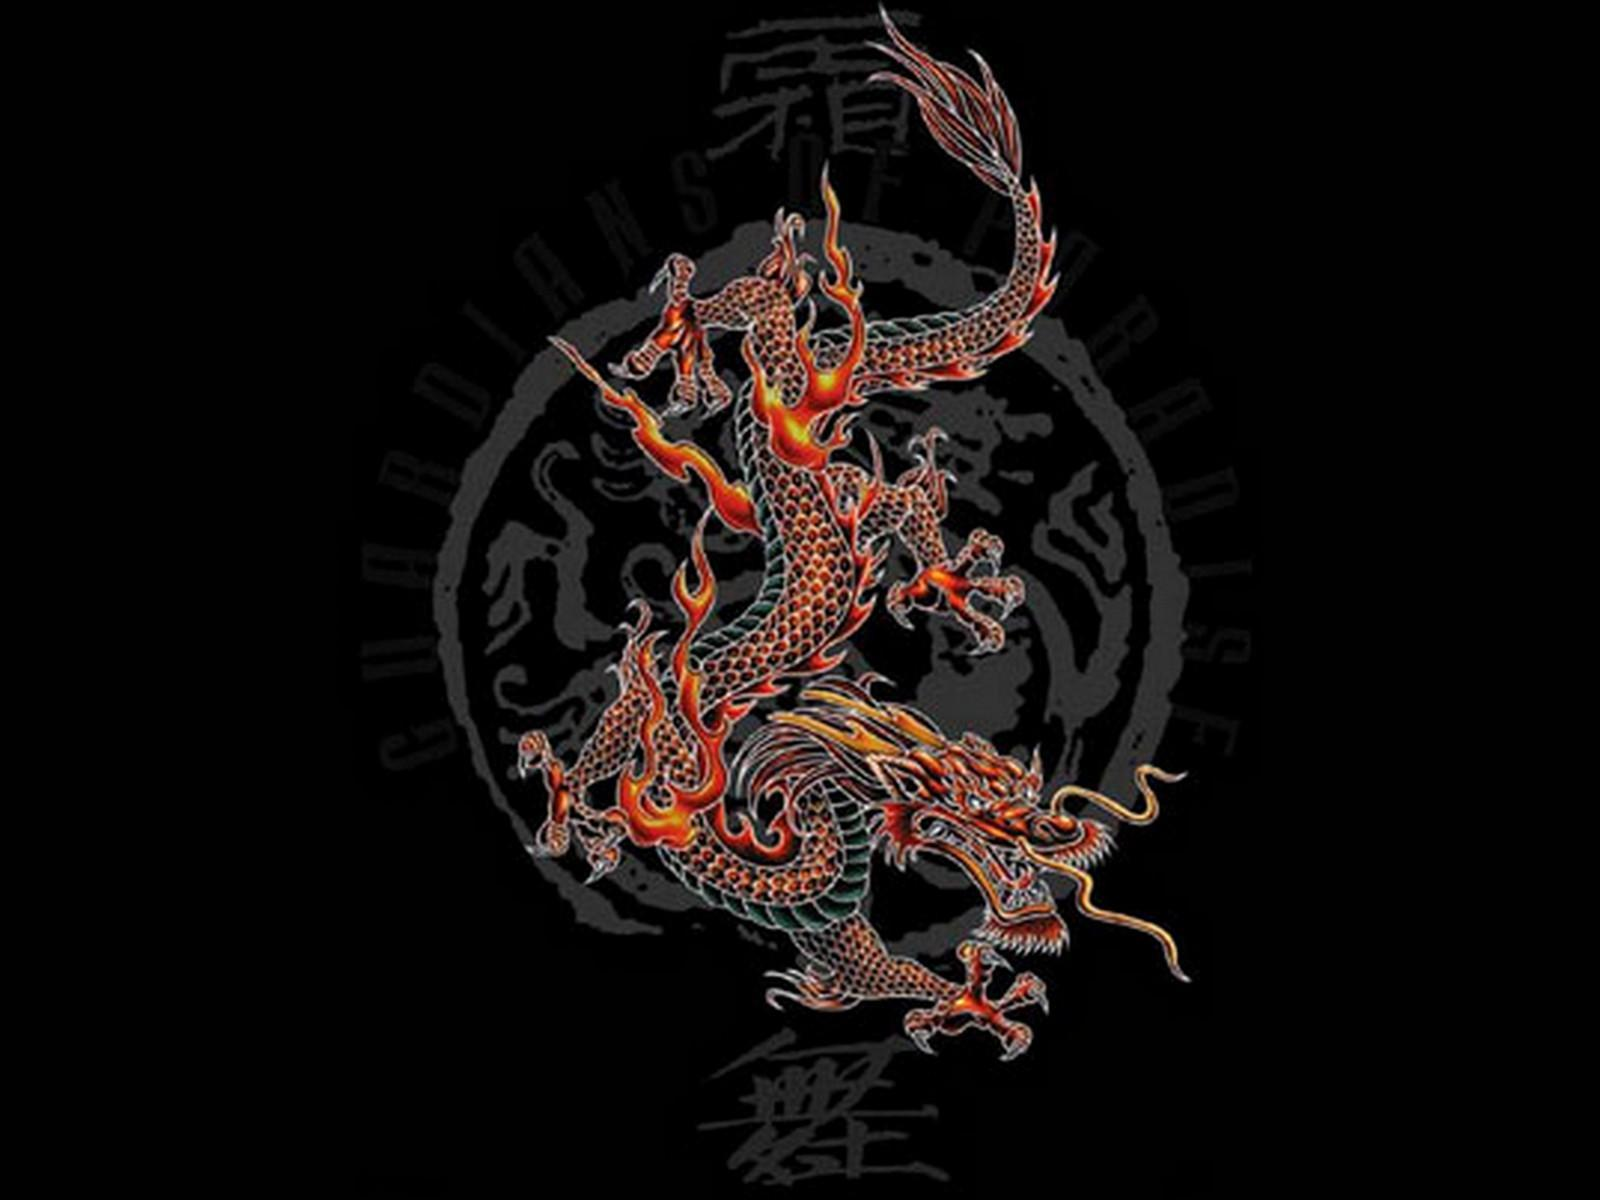 Chinese dragon wallpapers wallpaper cave - Cool dragon wallpapers ...